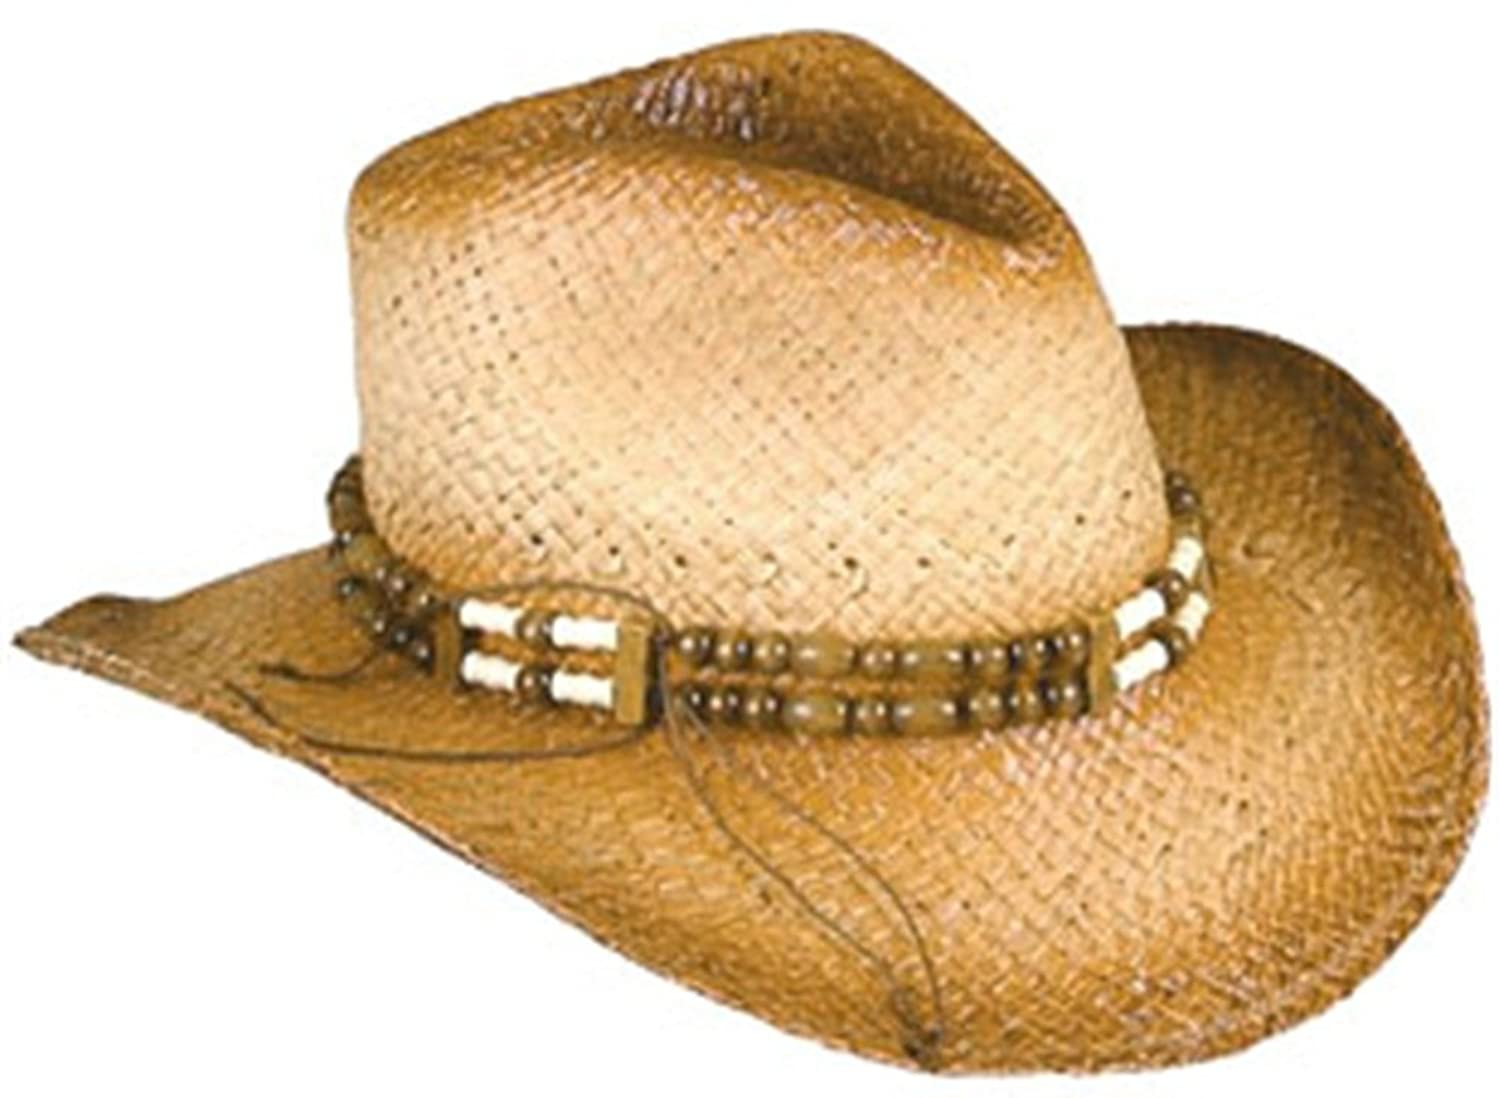 a49addfb Giddy-up, save a horse, and ride a cowboy! The popularity of straw hats is  exploding in urban centers from New York to Mexico City - spend 15 minutes  at an ...